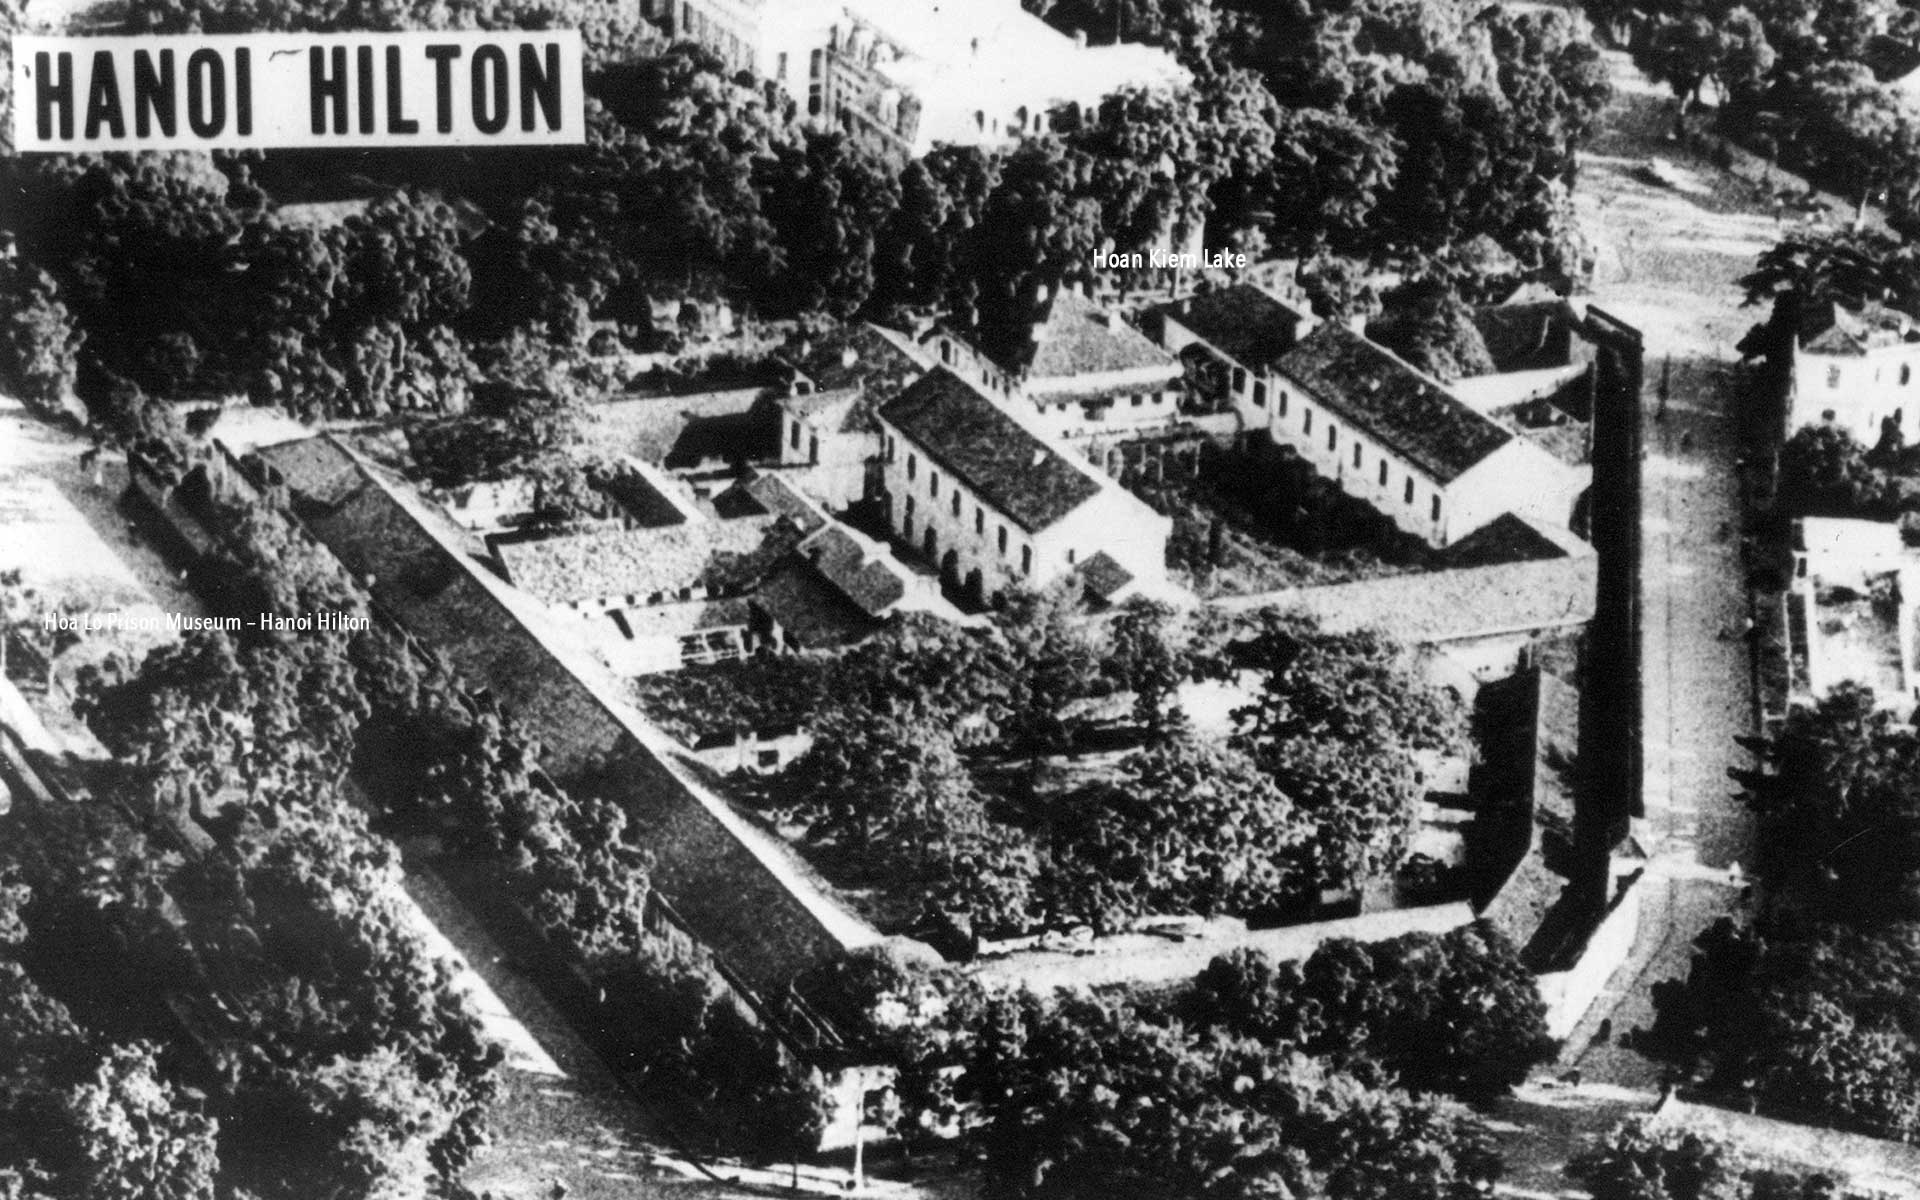 """The Hanoi Hilton"" from above. Picture taken on 1970"